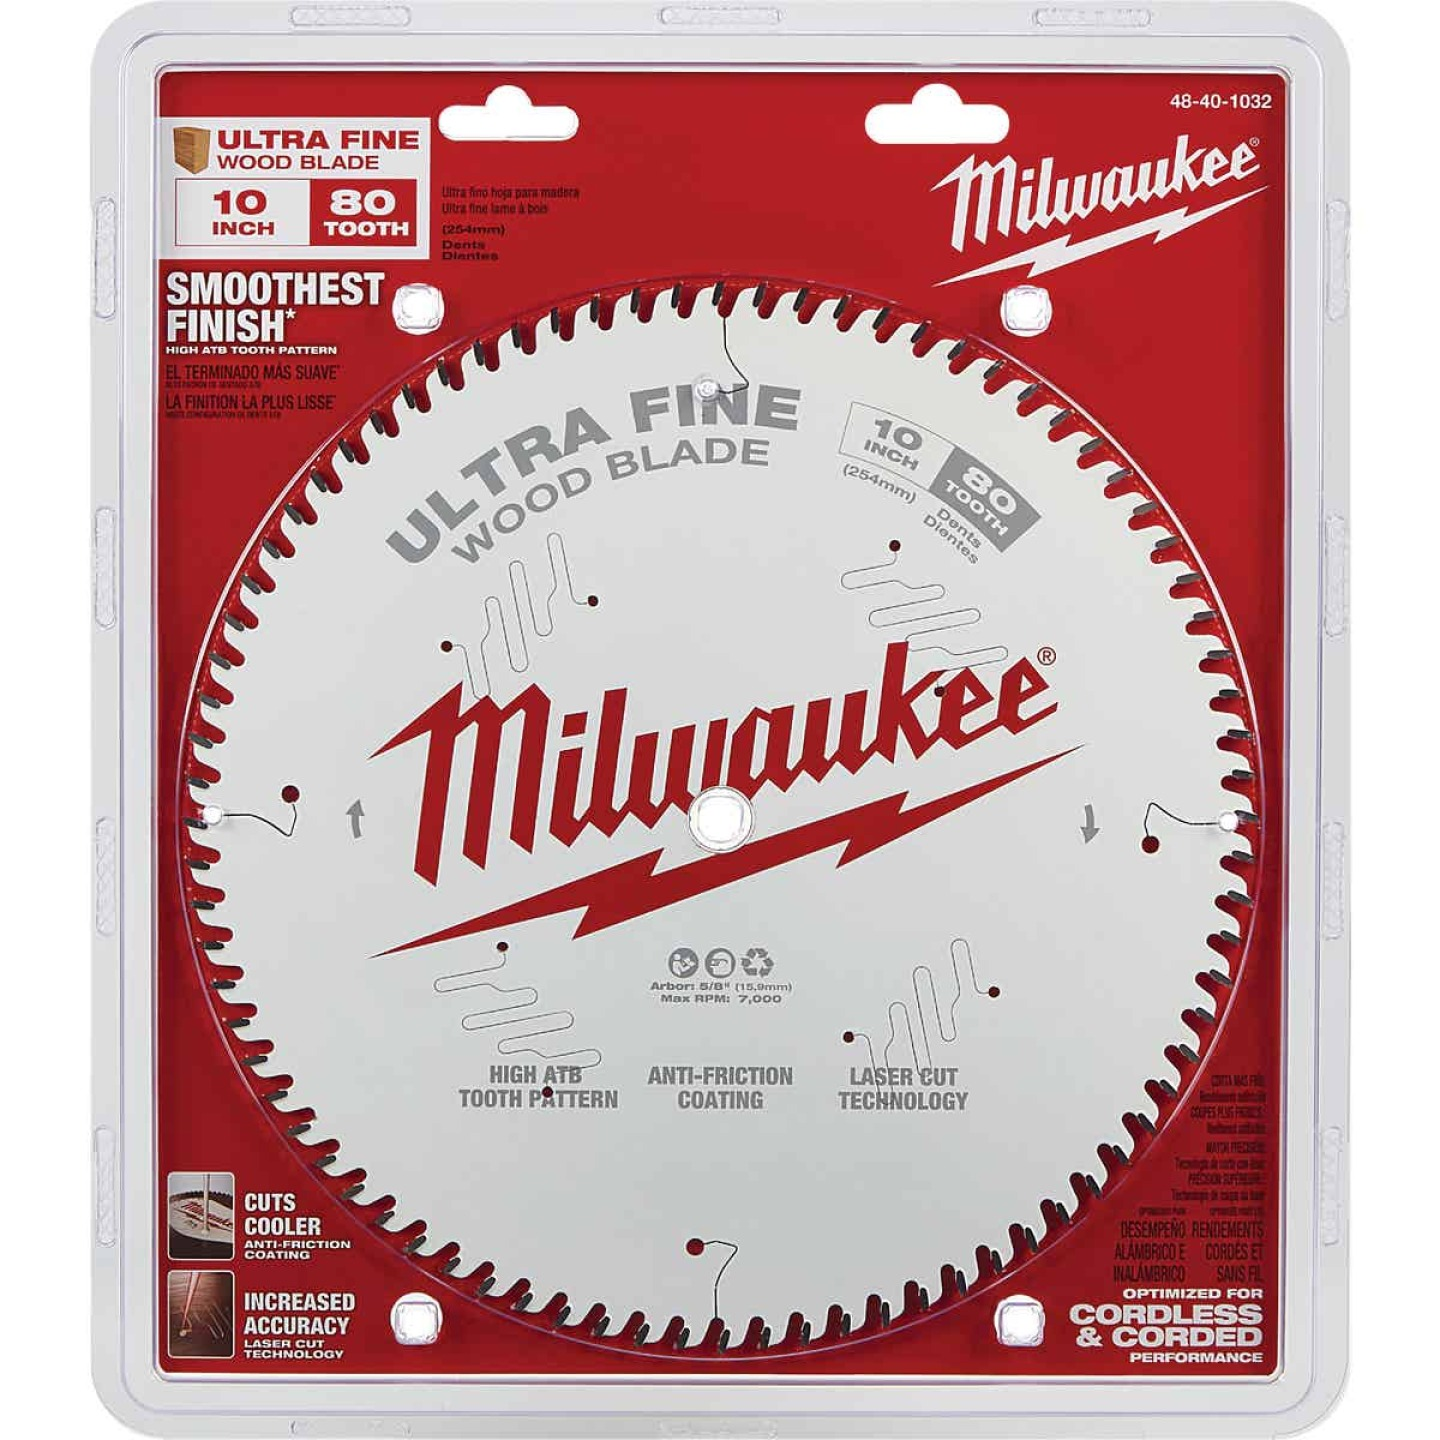 Milwaukee 10 In. 80-Tooth Ultra Fine Finish Circular Saw Blade Image 2